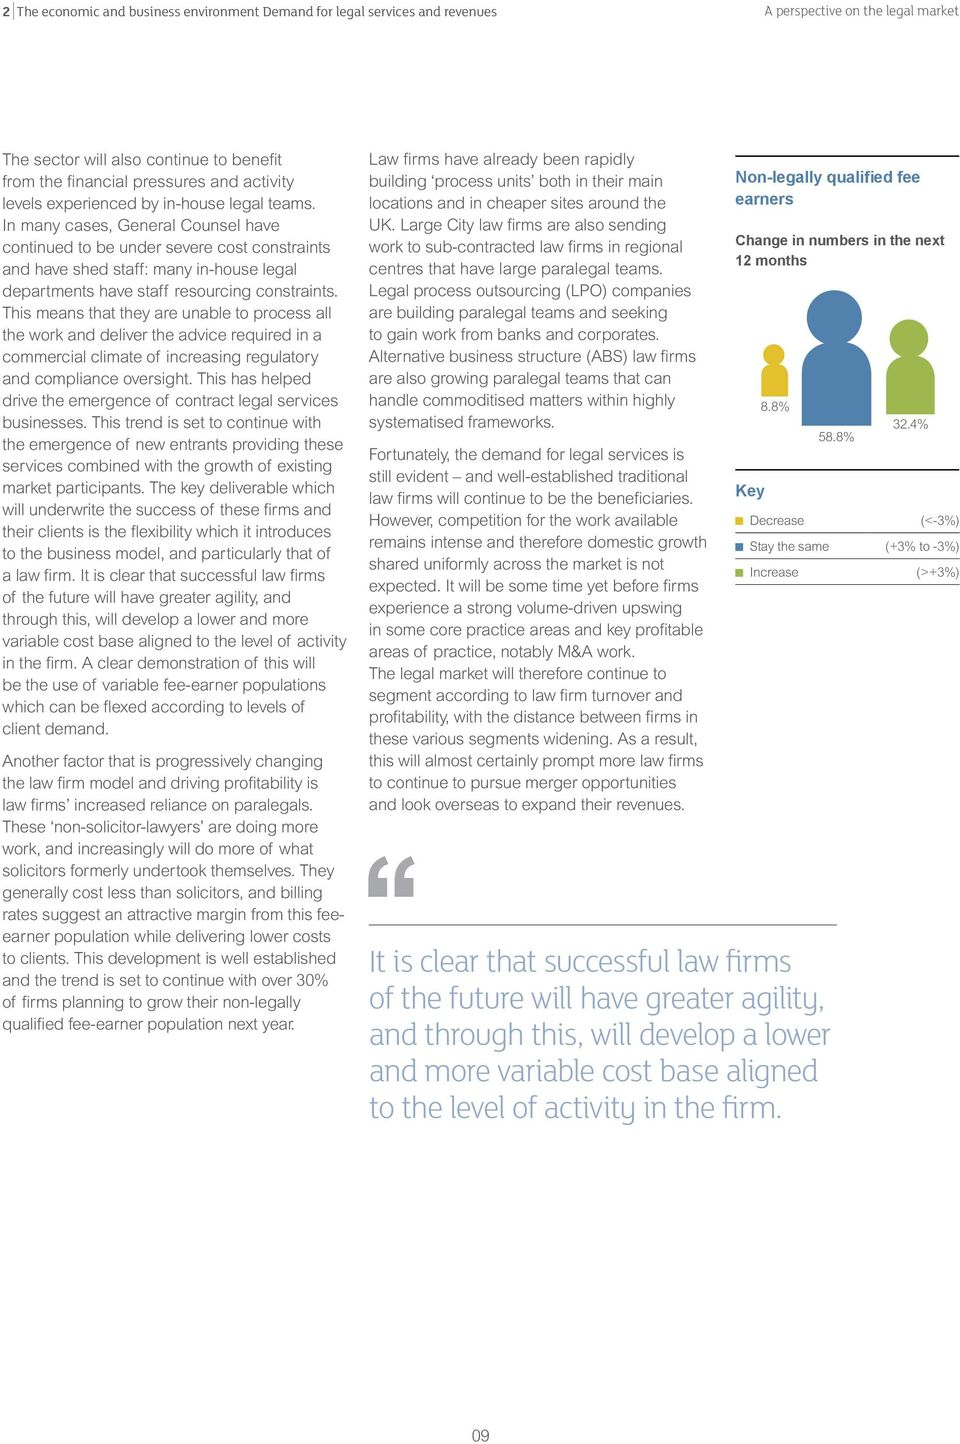 In many cases, General Counsel have continued to be under severe cost constraints and have shed staff: many in-house legal departments have staff resourcing constraints.